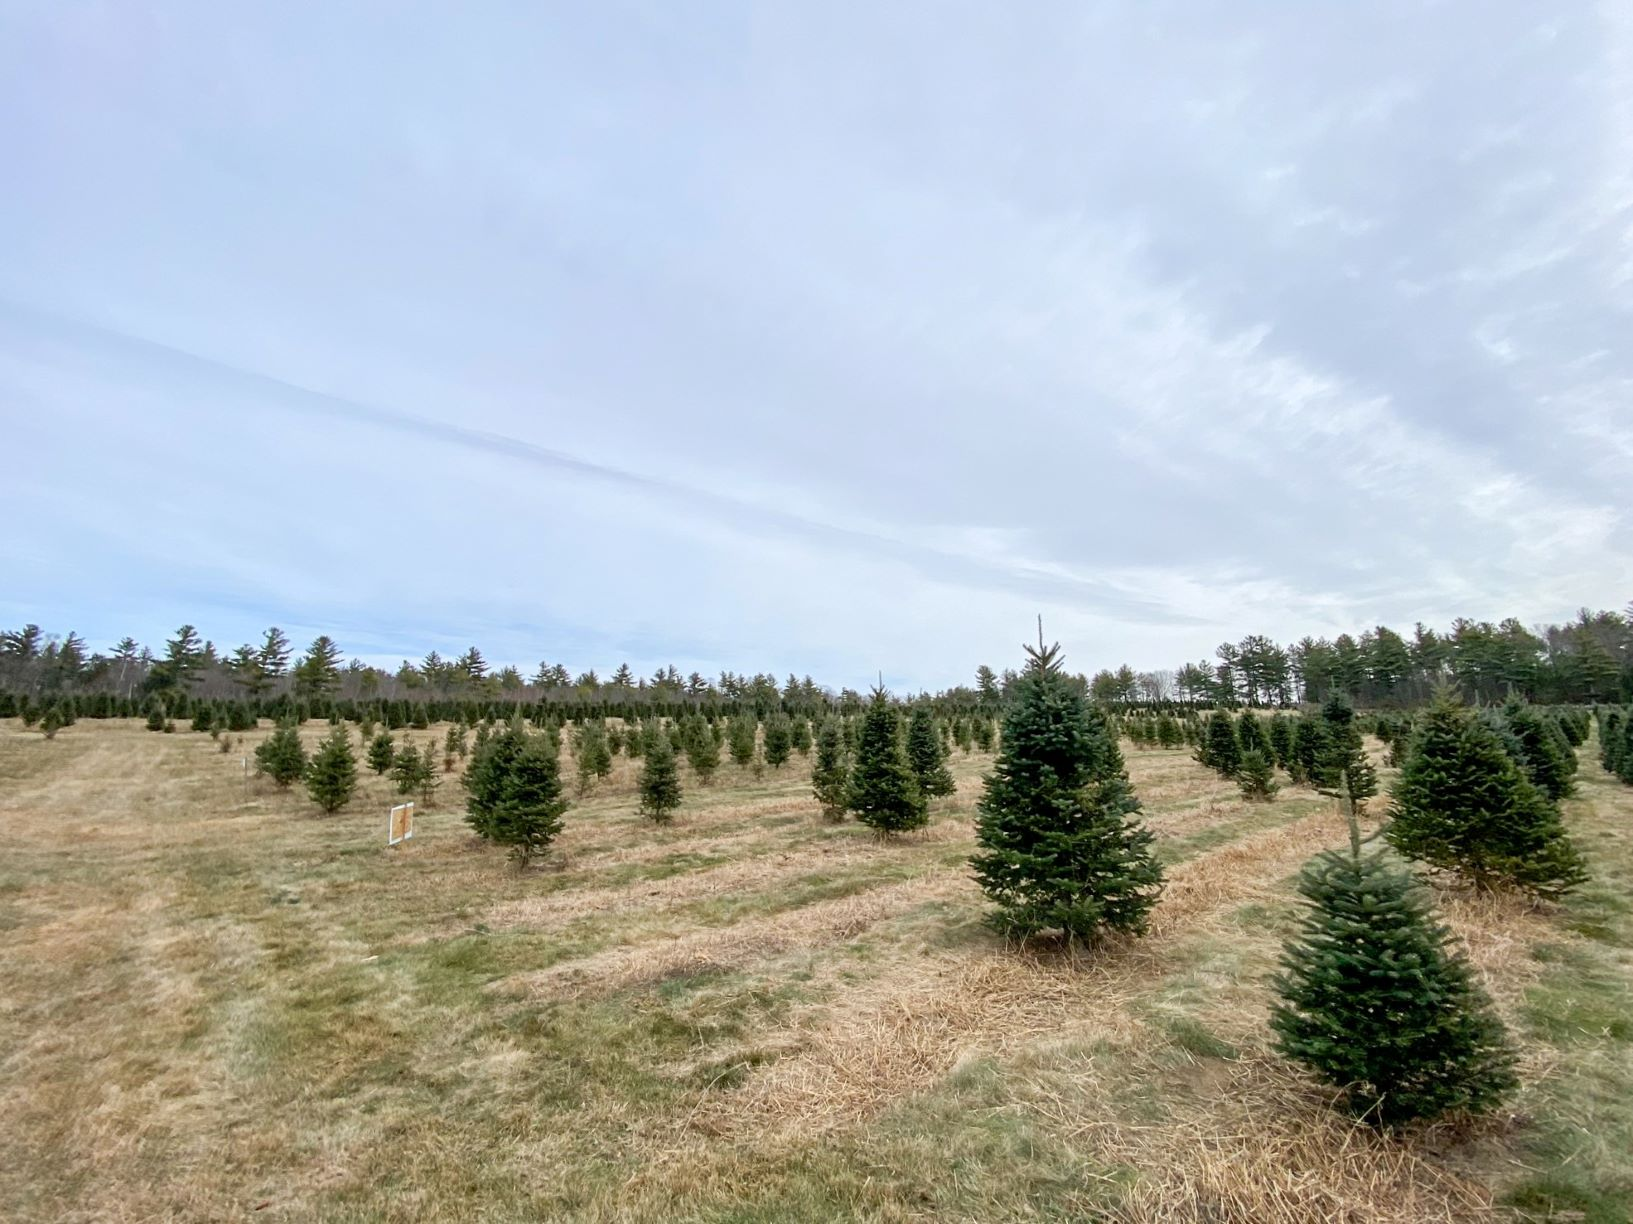 NH Woods & Wildlife: Live! – Home Grown Holidays: Growing Christmas Trees in New Hampshire